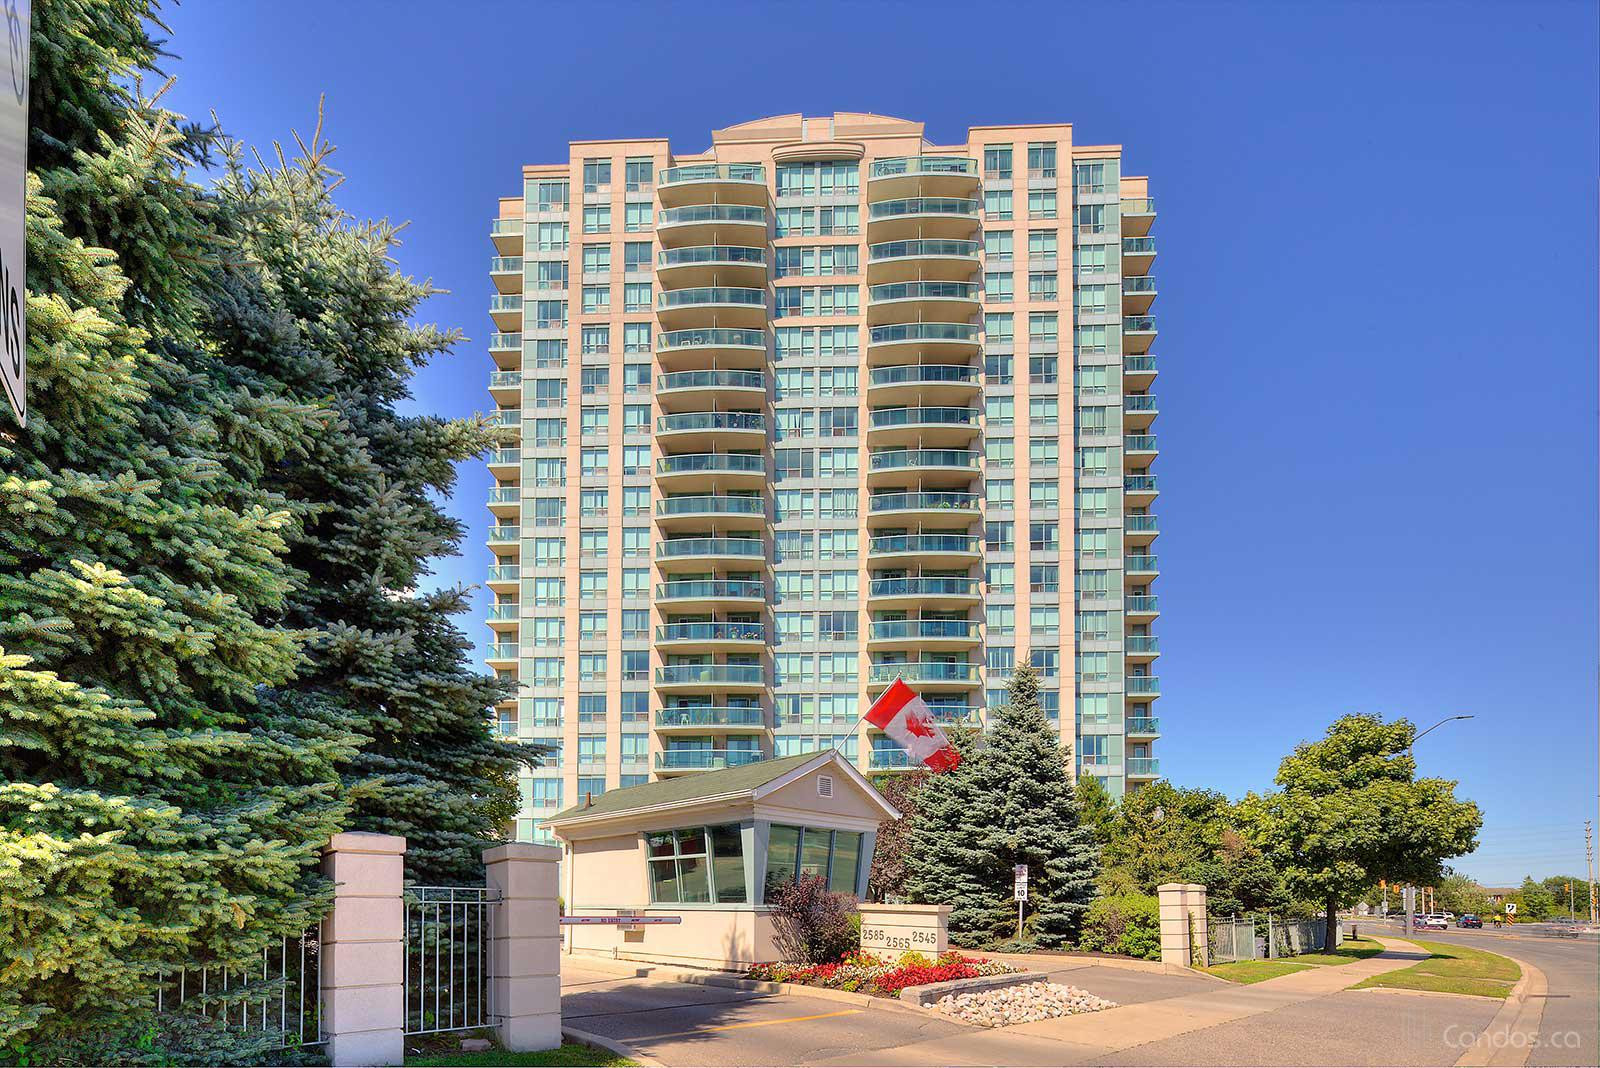 Parkway Place at 2585 Erin Centre Blvd, Mississauga 0